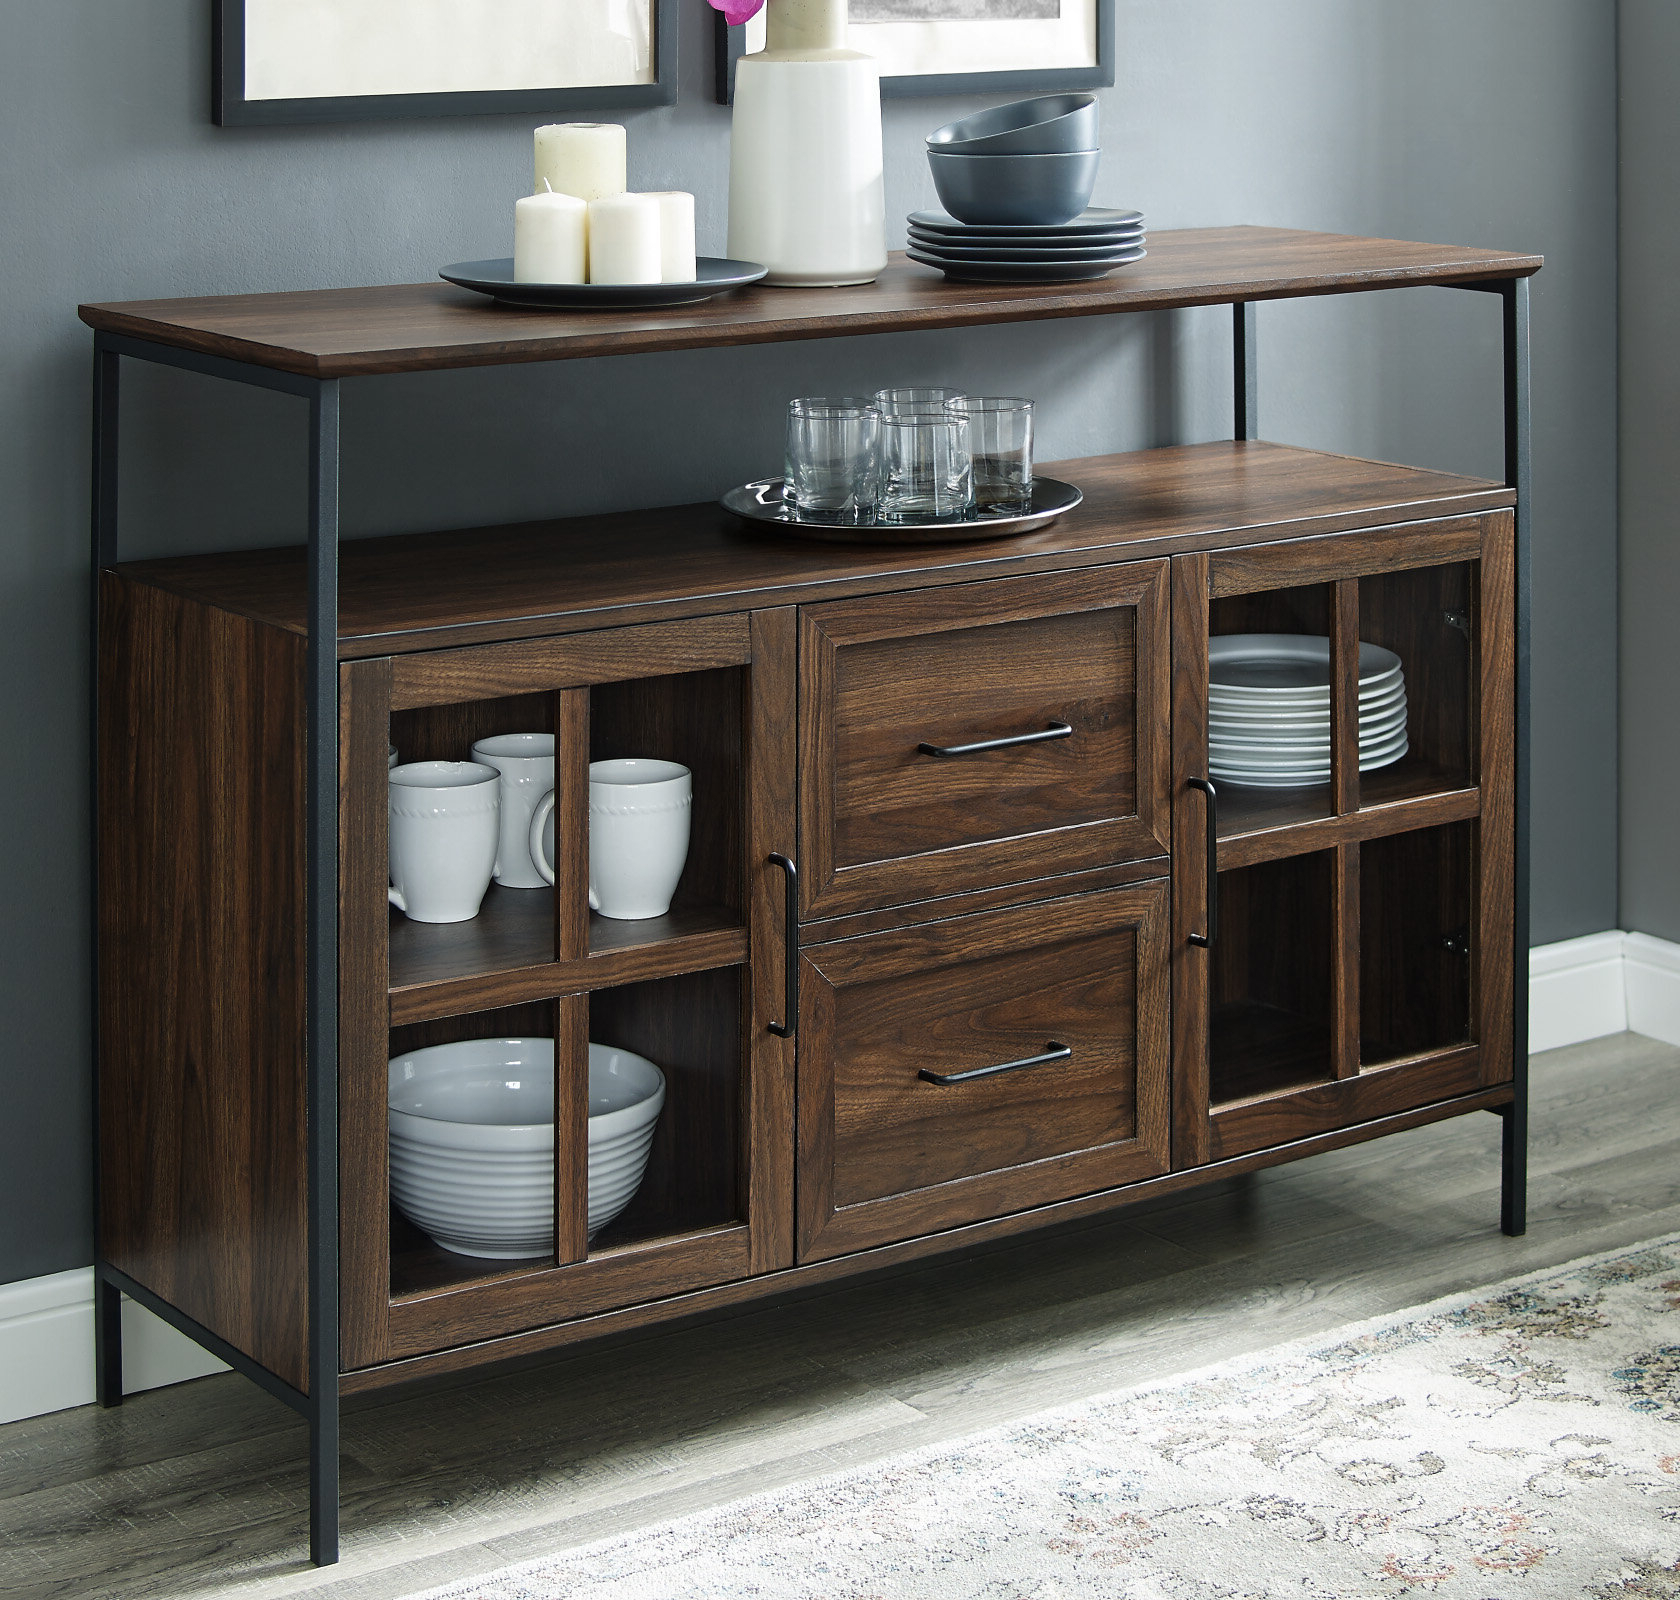 Narrow Buffet Table | Wayfair Within Contemporary Wooden Buffets With One Side Door Storage Cabinets And Two Drawers (View 13 of 20)